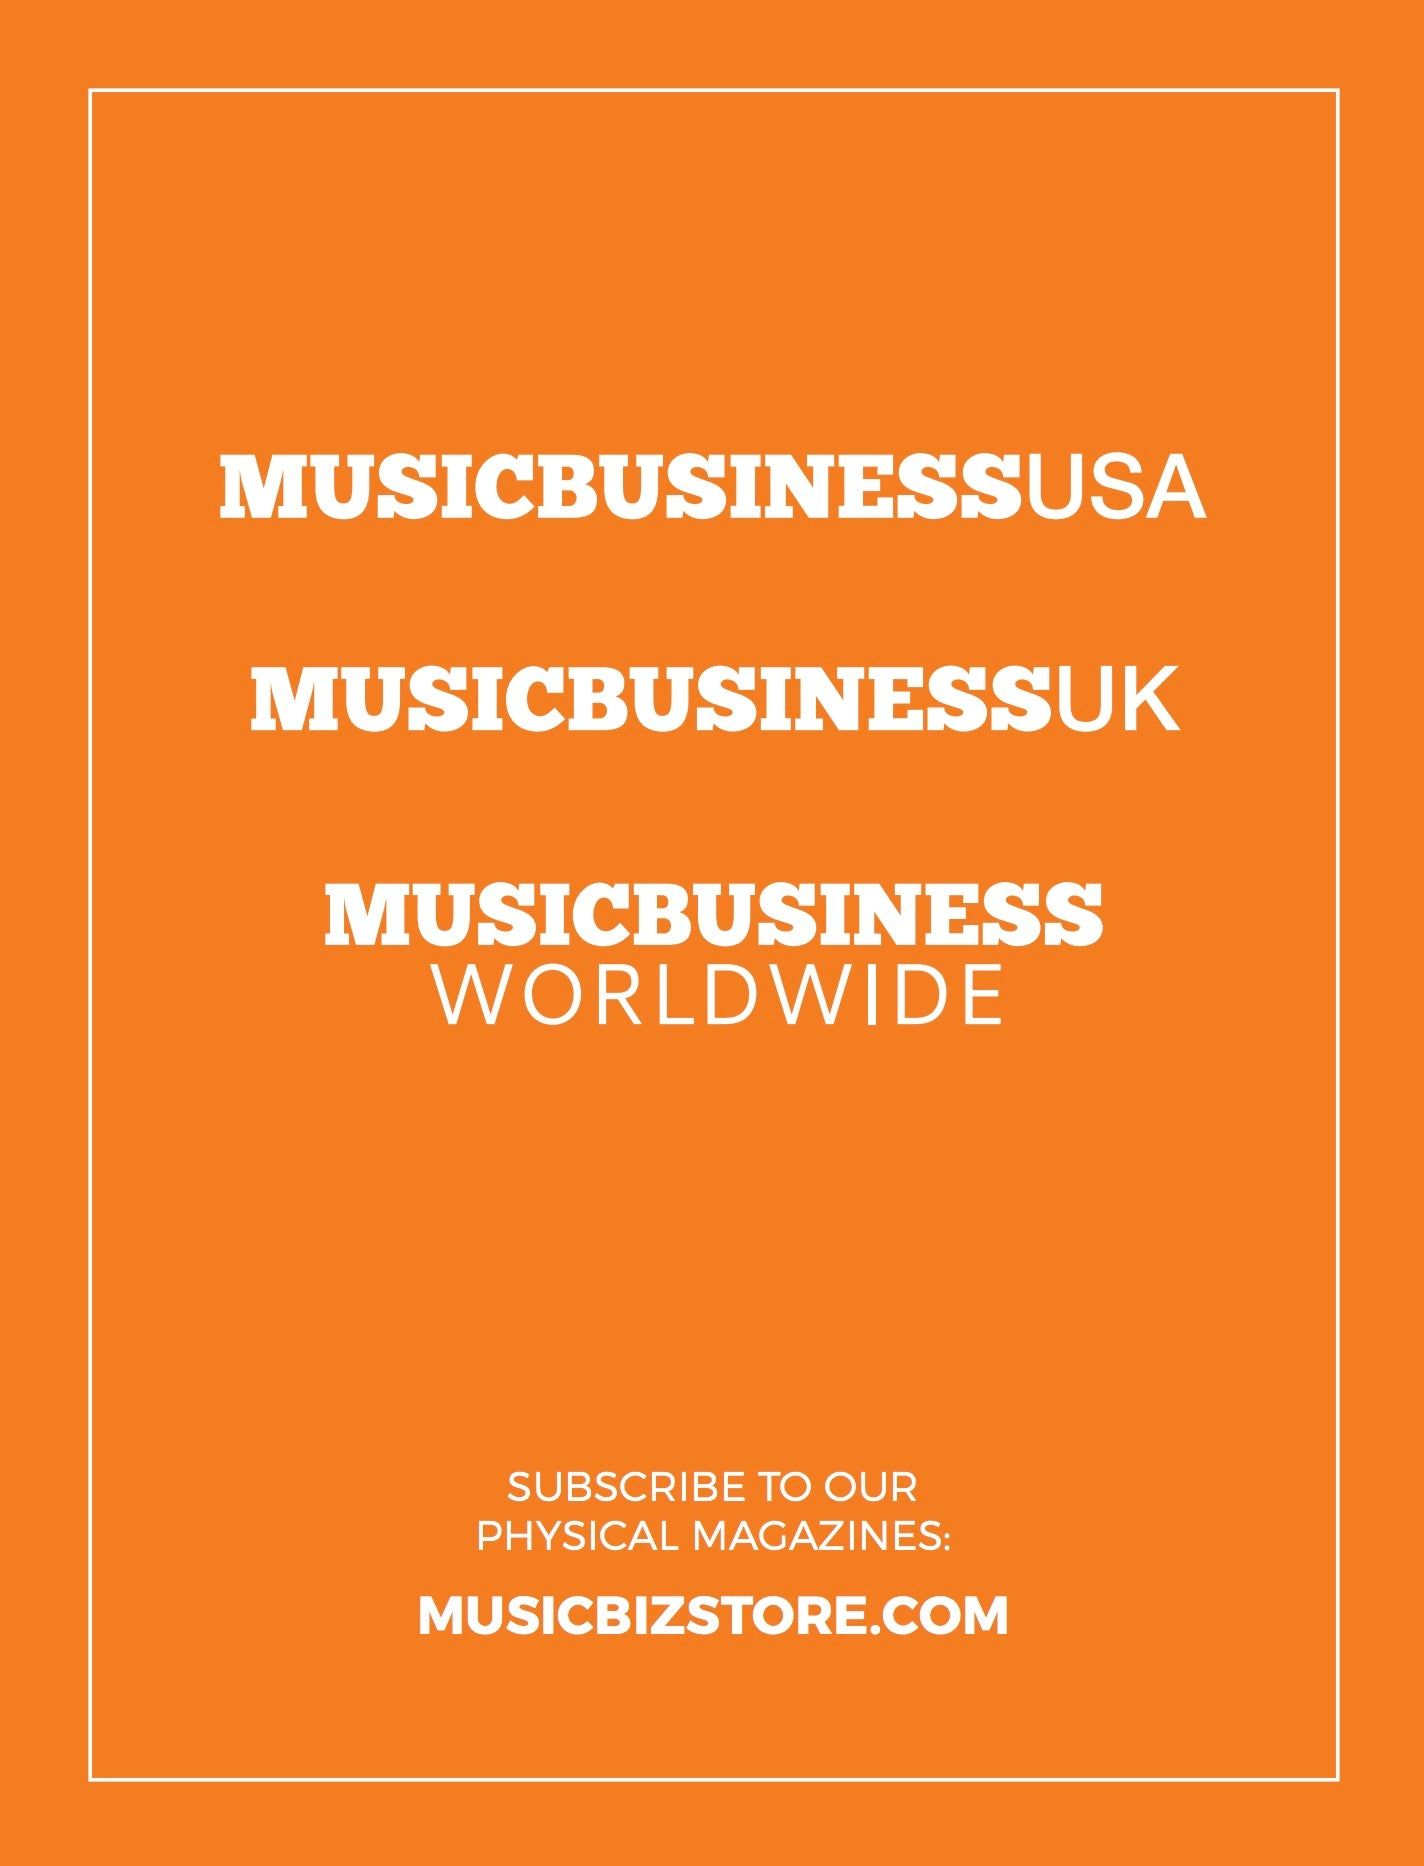 Annual MBW Physical Subscription - Music Business UK, Music Business USA & MBW Yearbook